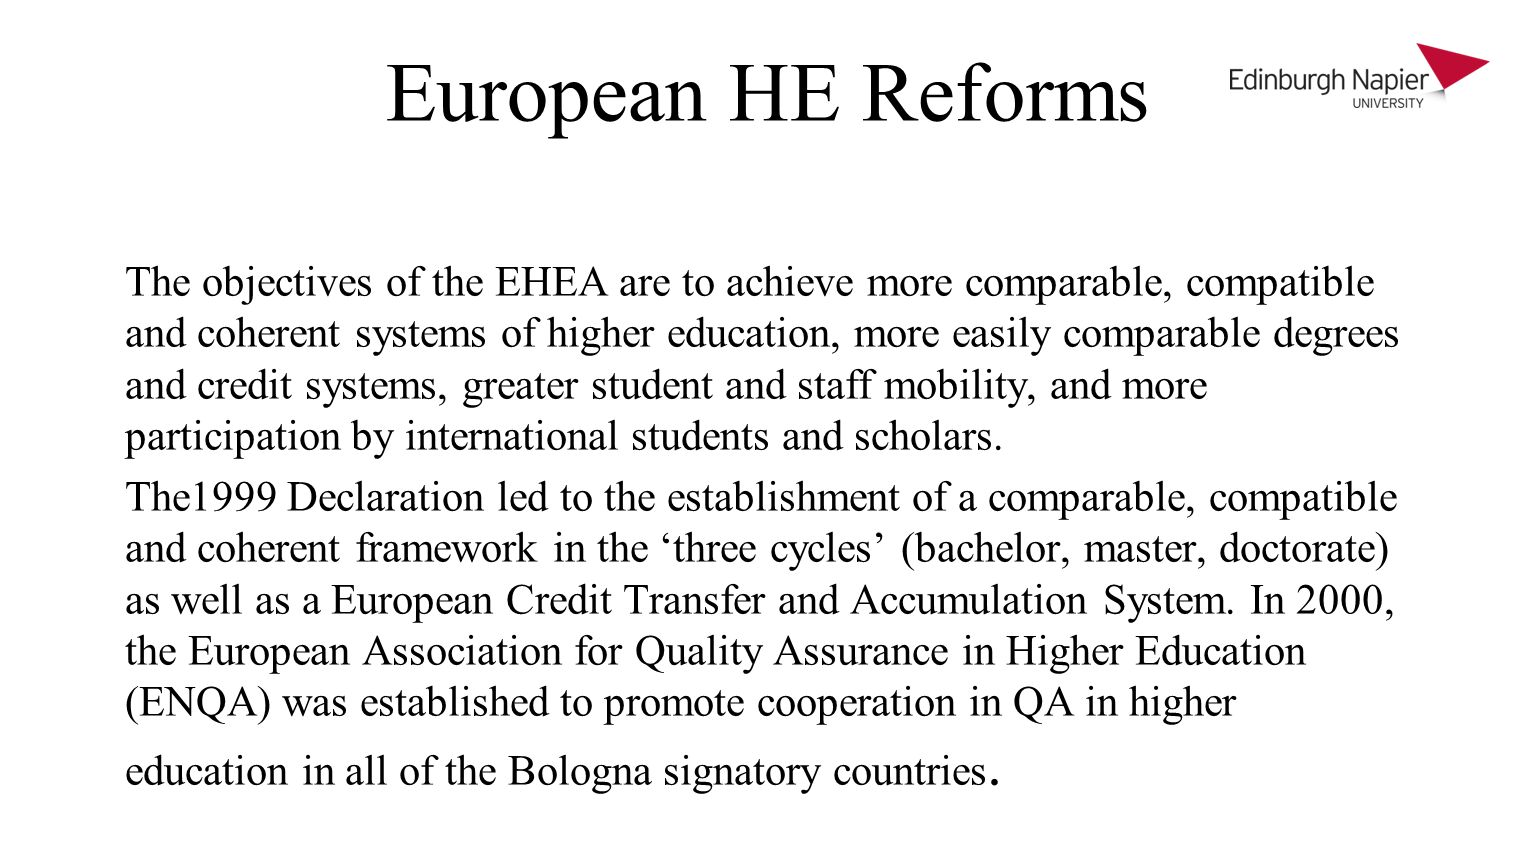 European HE Reforms The objectives of the EHEA are to achieve more comparable, compatible and coherent systems of higher education, more easily comparable degrees and credit systems, greater student and staff mobility, and more participation by international students and scholars.